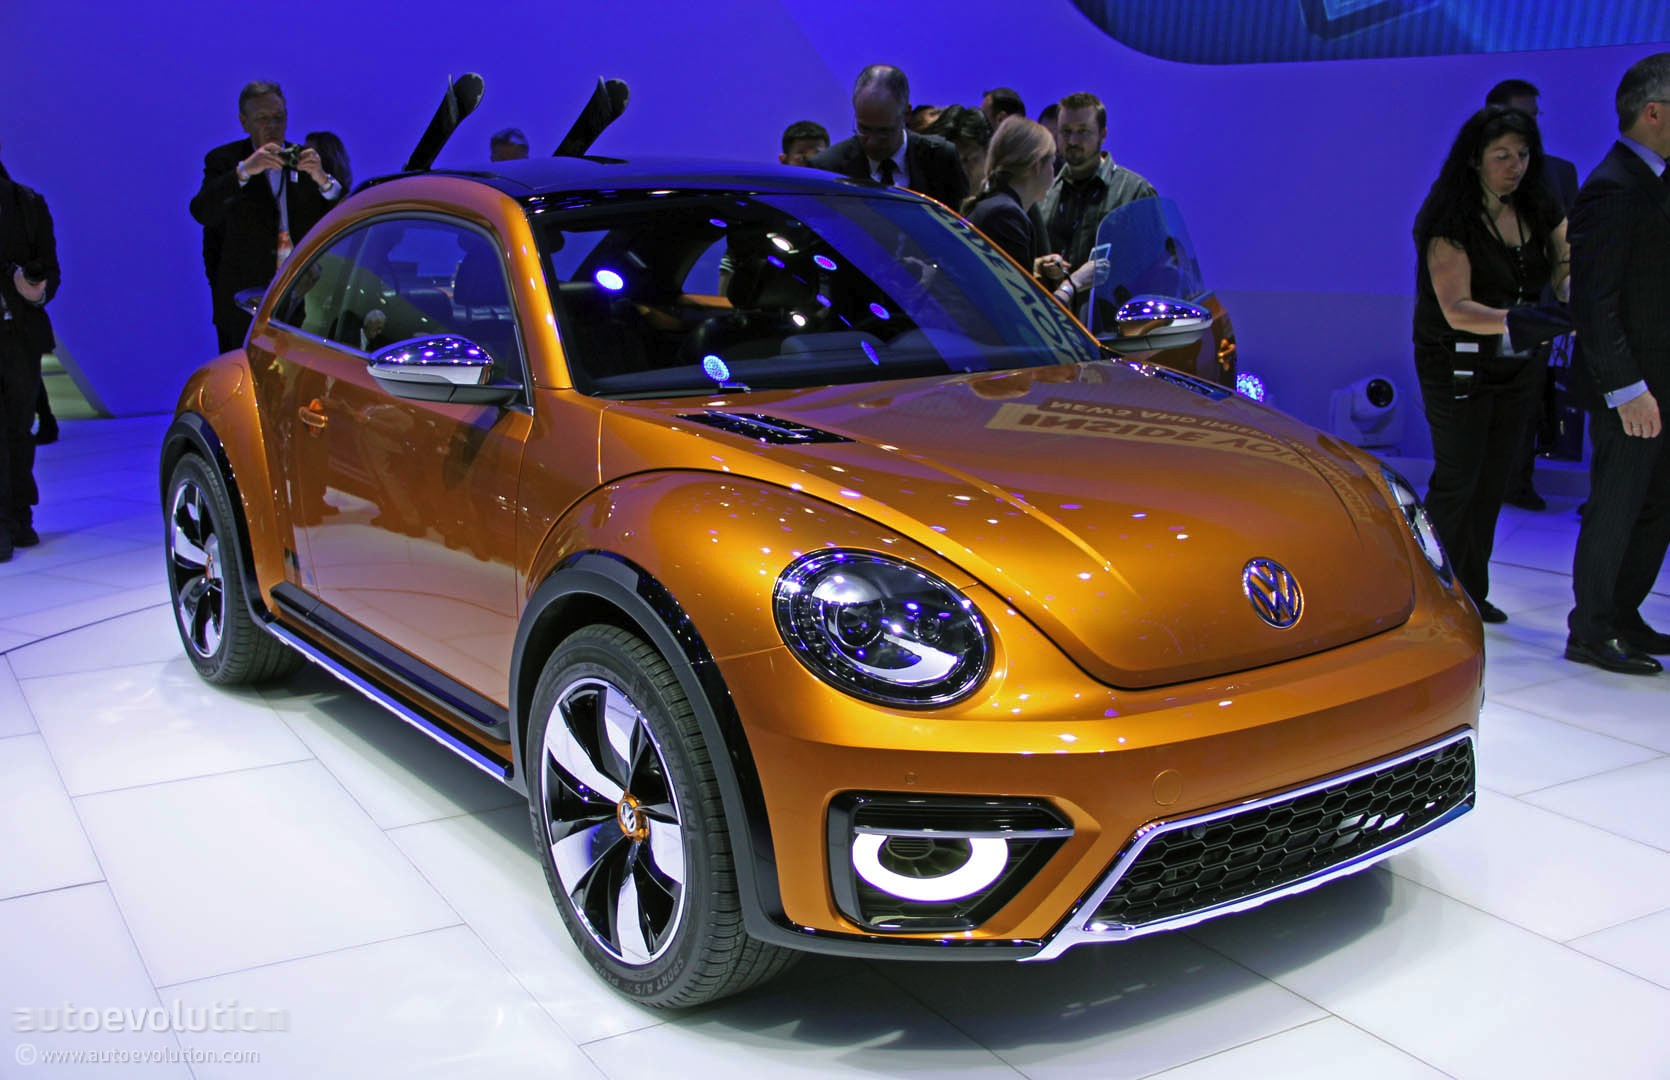 new york volkswagen confirms beetle dune production in 2016 shows 4 new concepts autoevolution. Black Bedroom Furniture Sets. Home Design Ideas